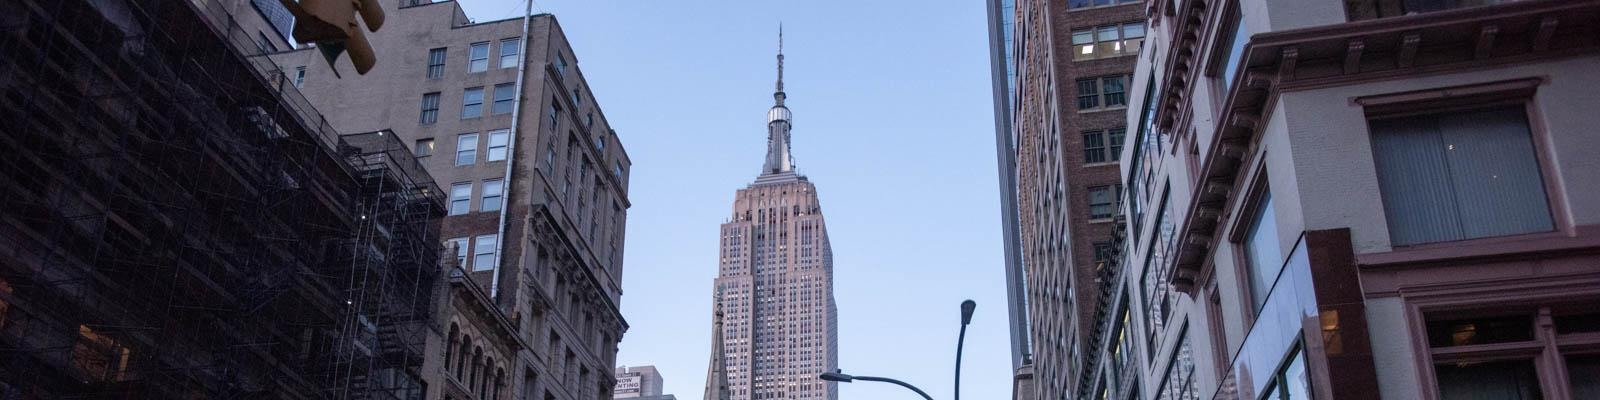 Make the most of your trip to the Empire State Building.